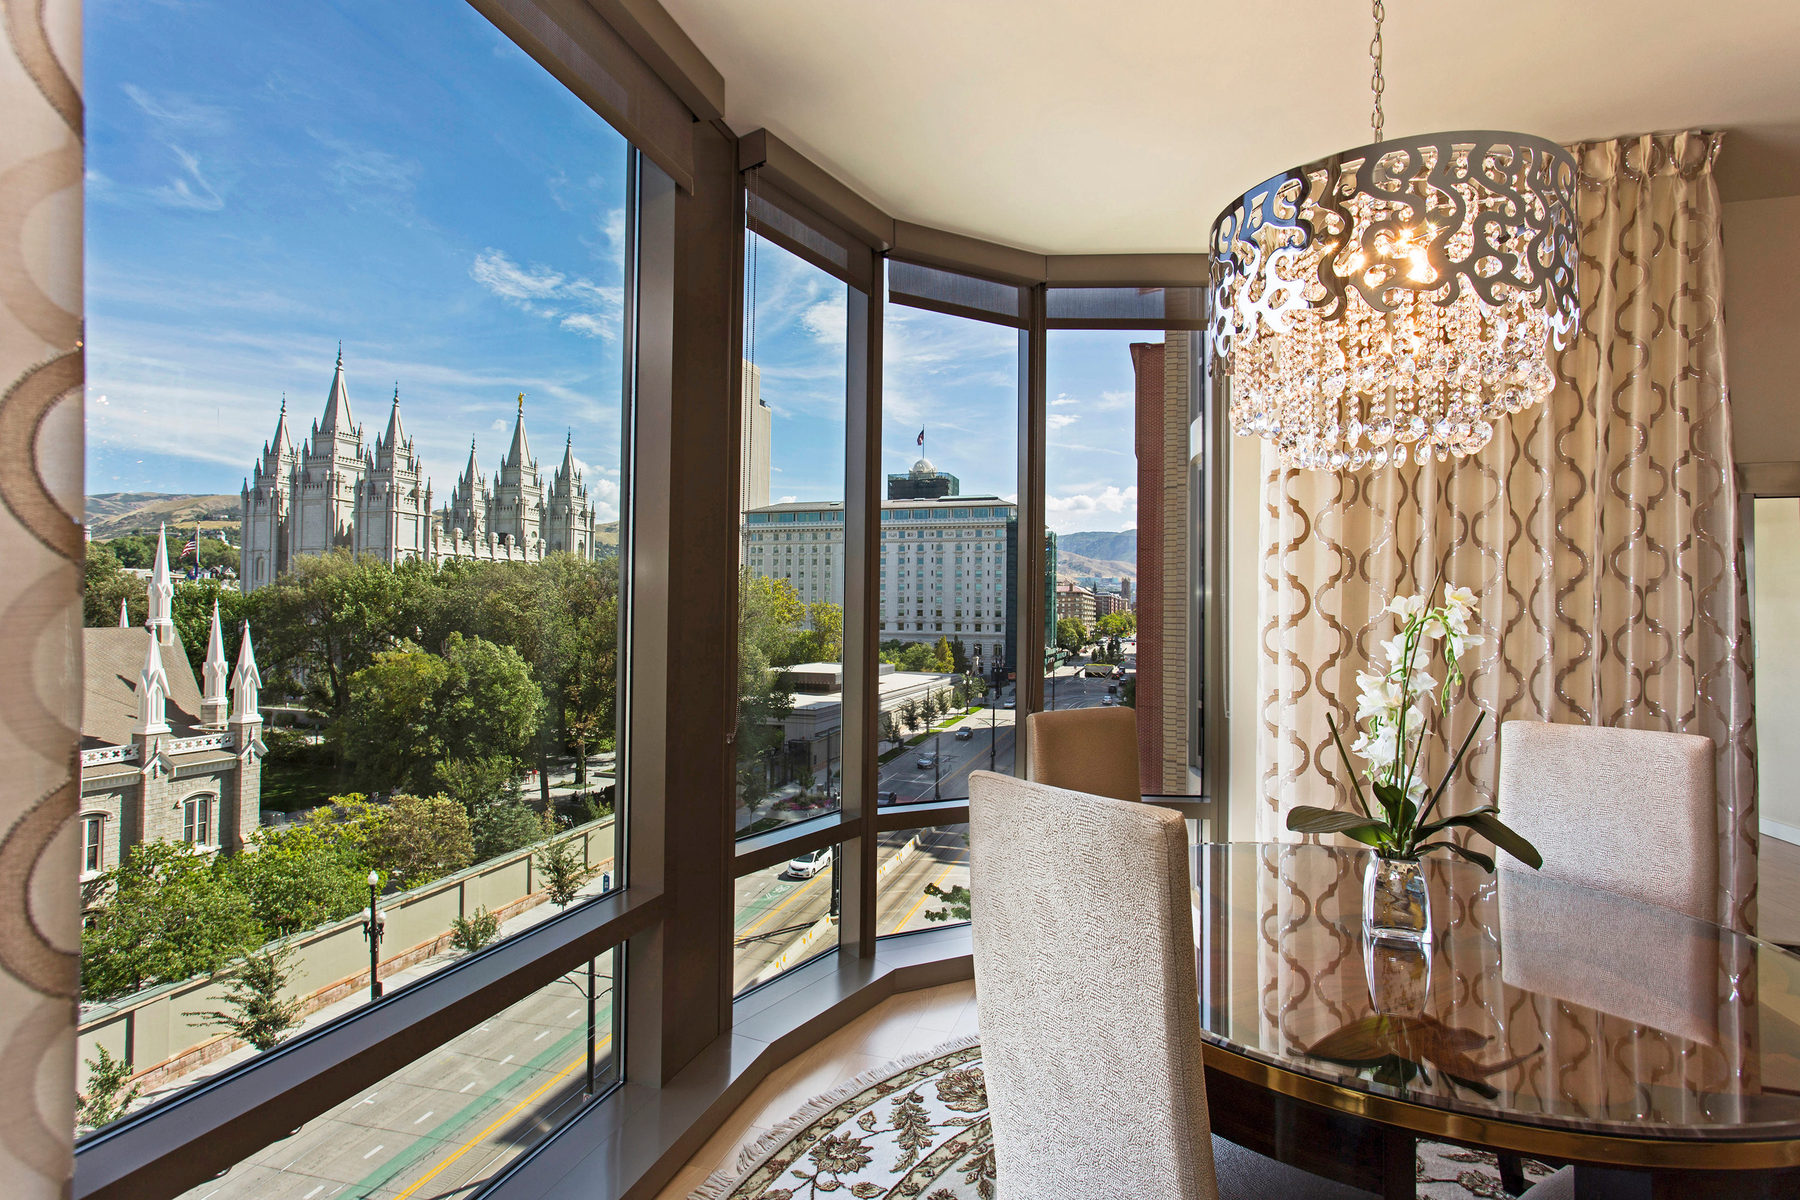 共管式独立产权公寓 为 销售 在 Captivating Views and Exquisite Design and Interior 99 S West Temple St #606 Salt Lake City, 犹他州 84101 美国